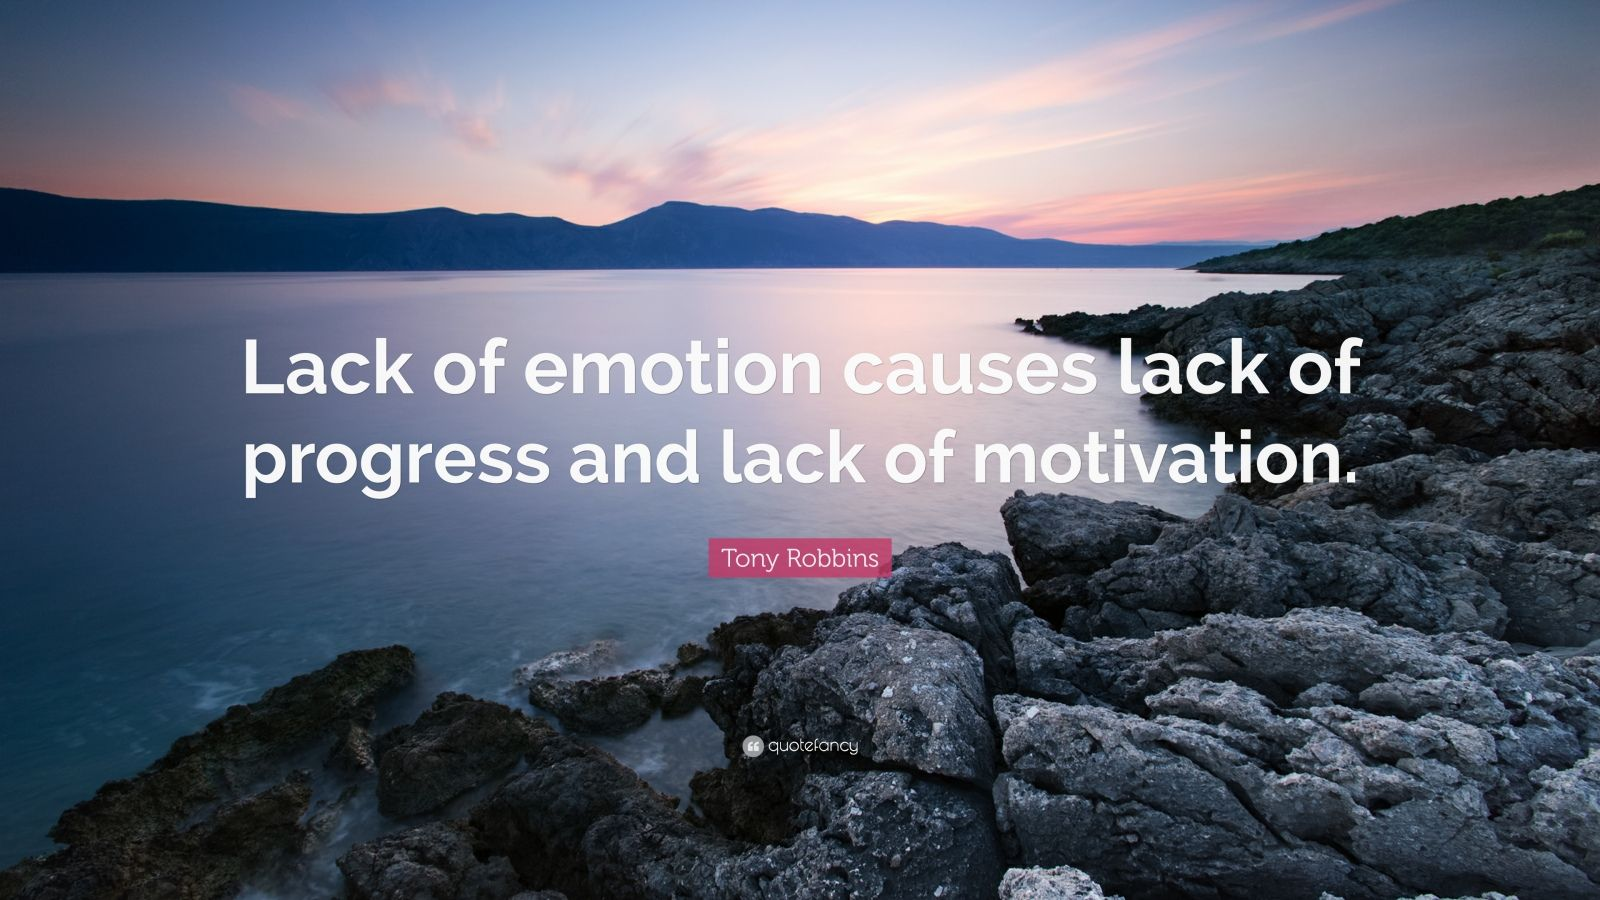 """Tony Robbins Quote: """"Lack of emotion causes lack of progress and lack of motivation."""""""